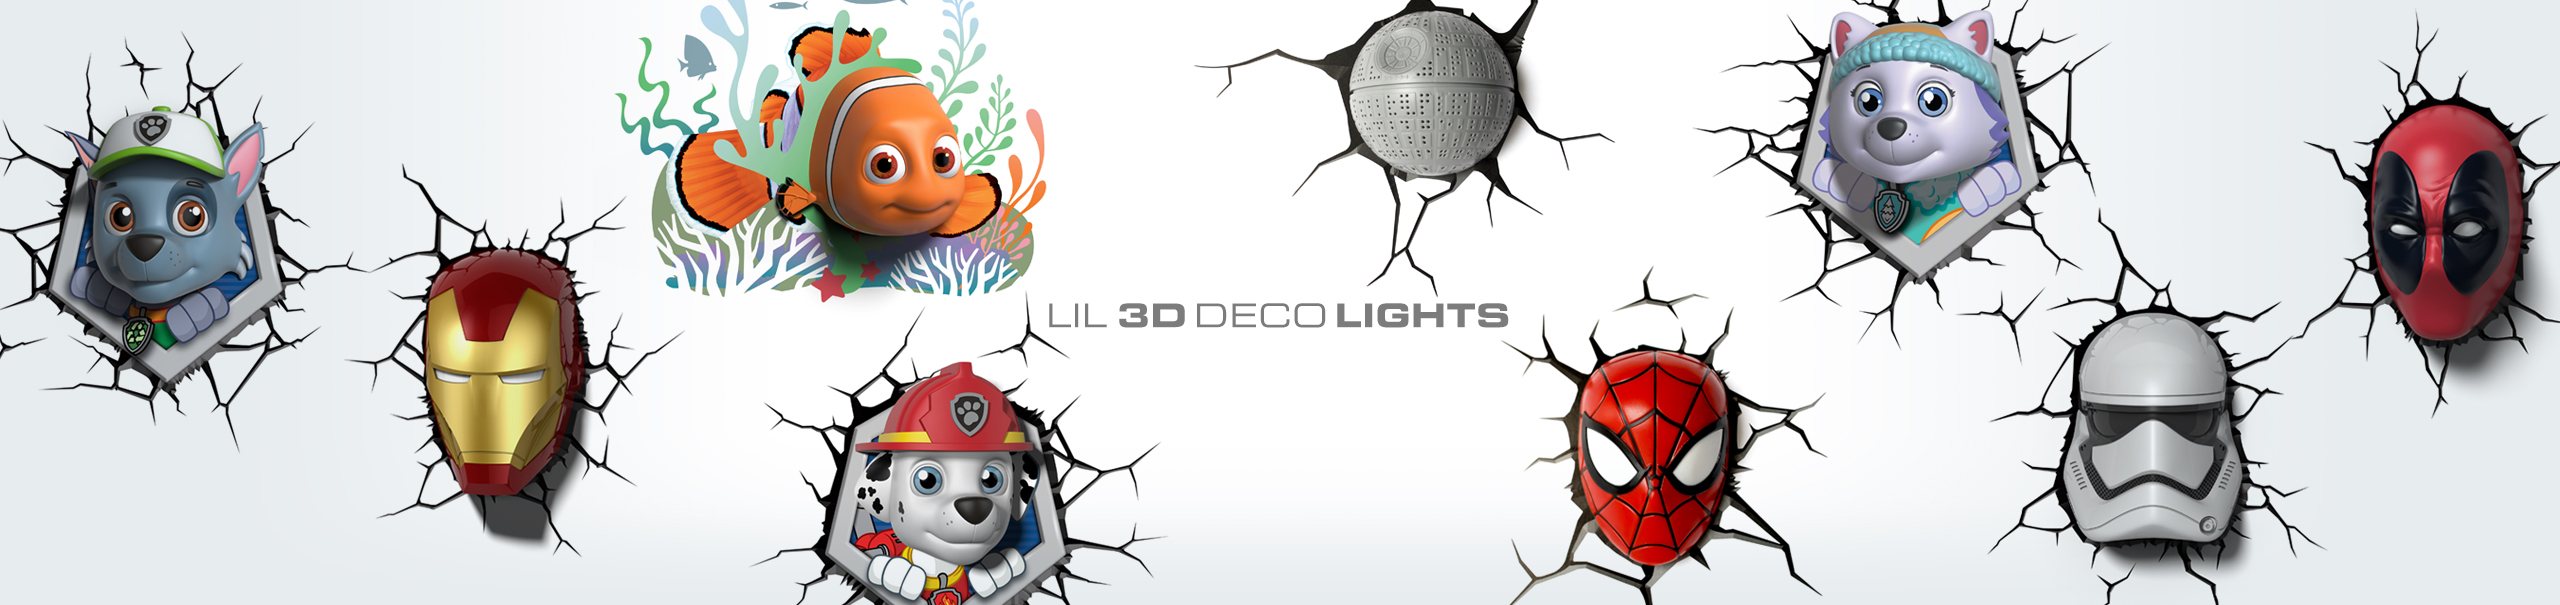 Lil 3D Deco Lights Banner